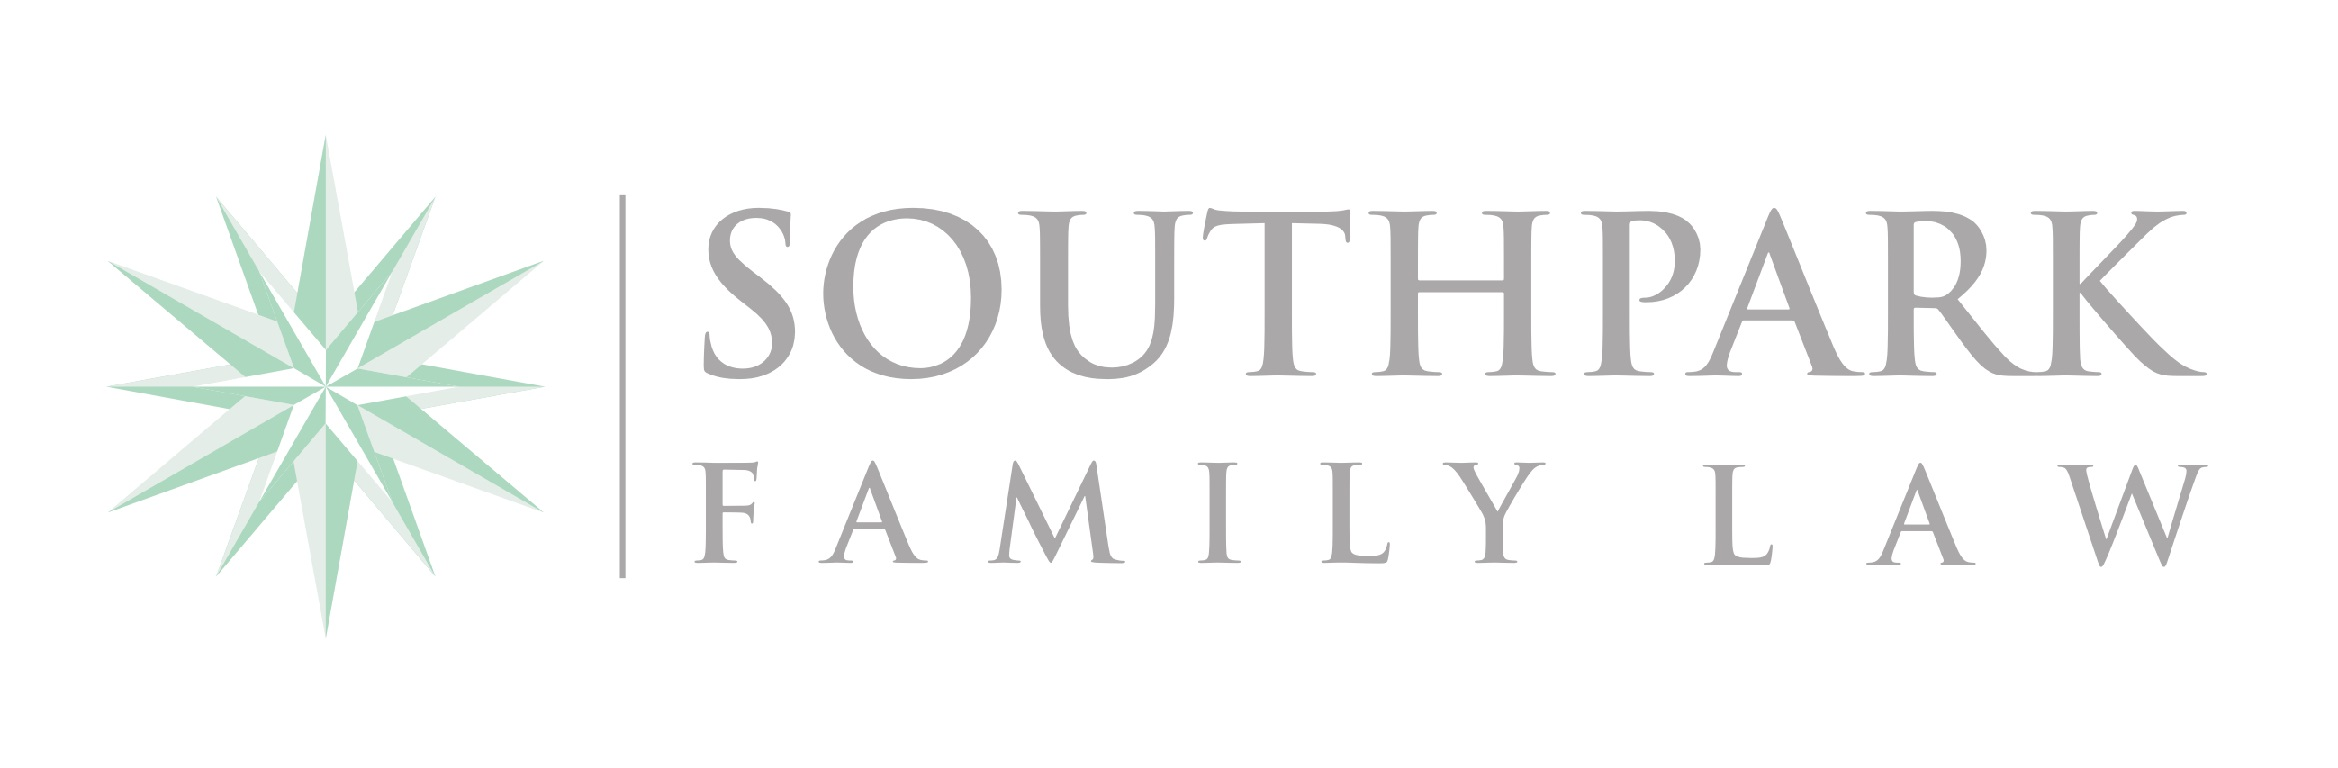 Southpark Family Law Participates In Free Divorce Clinic 3